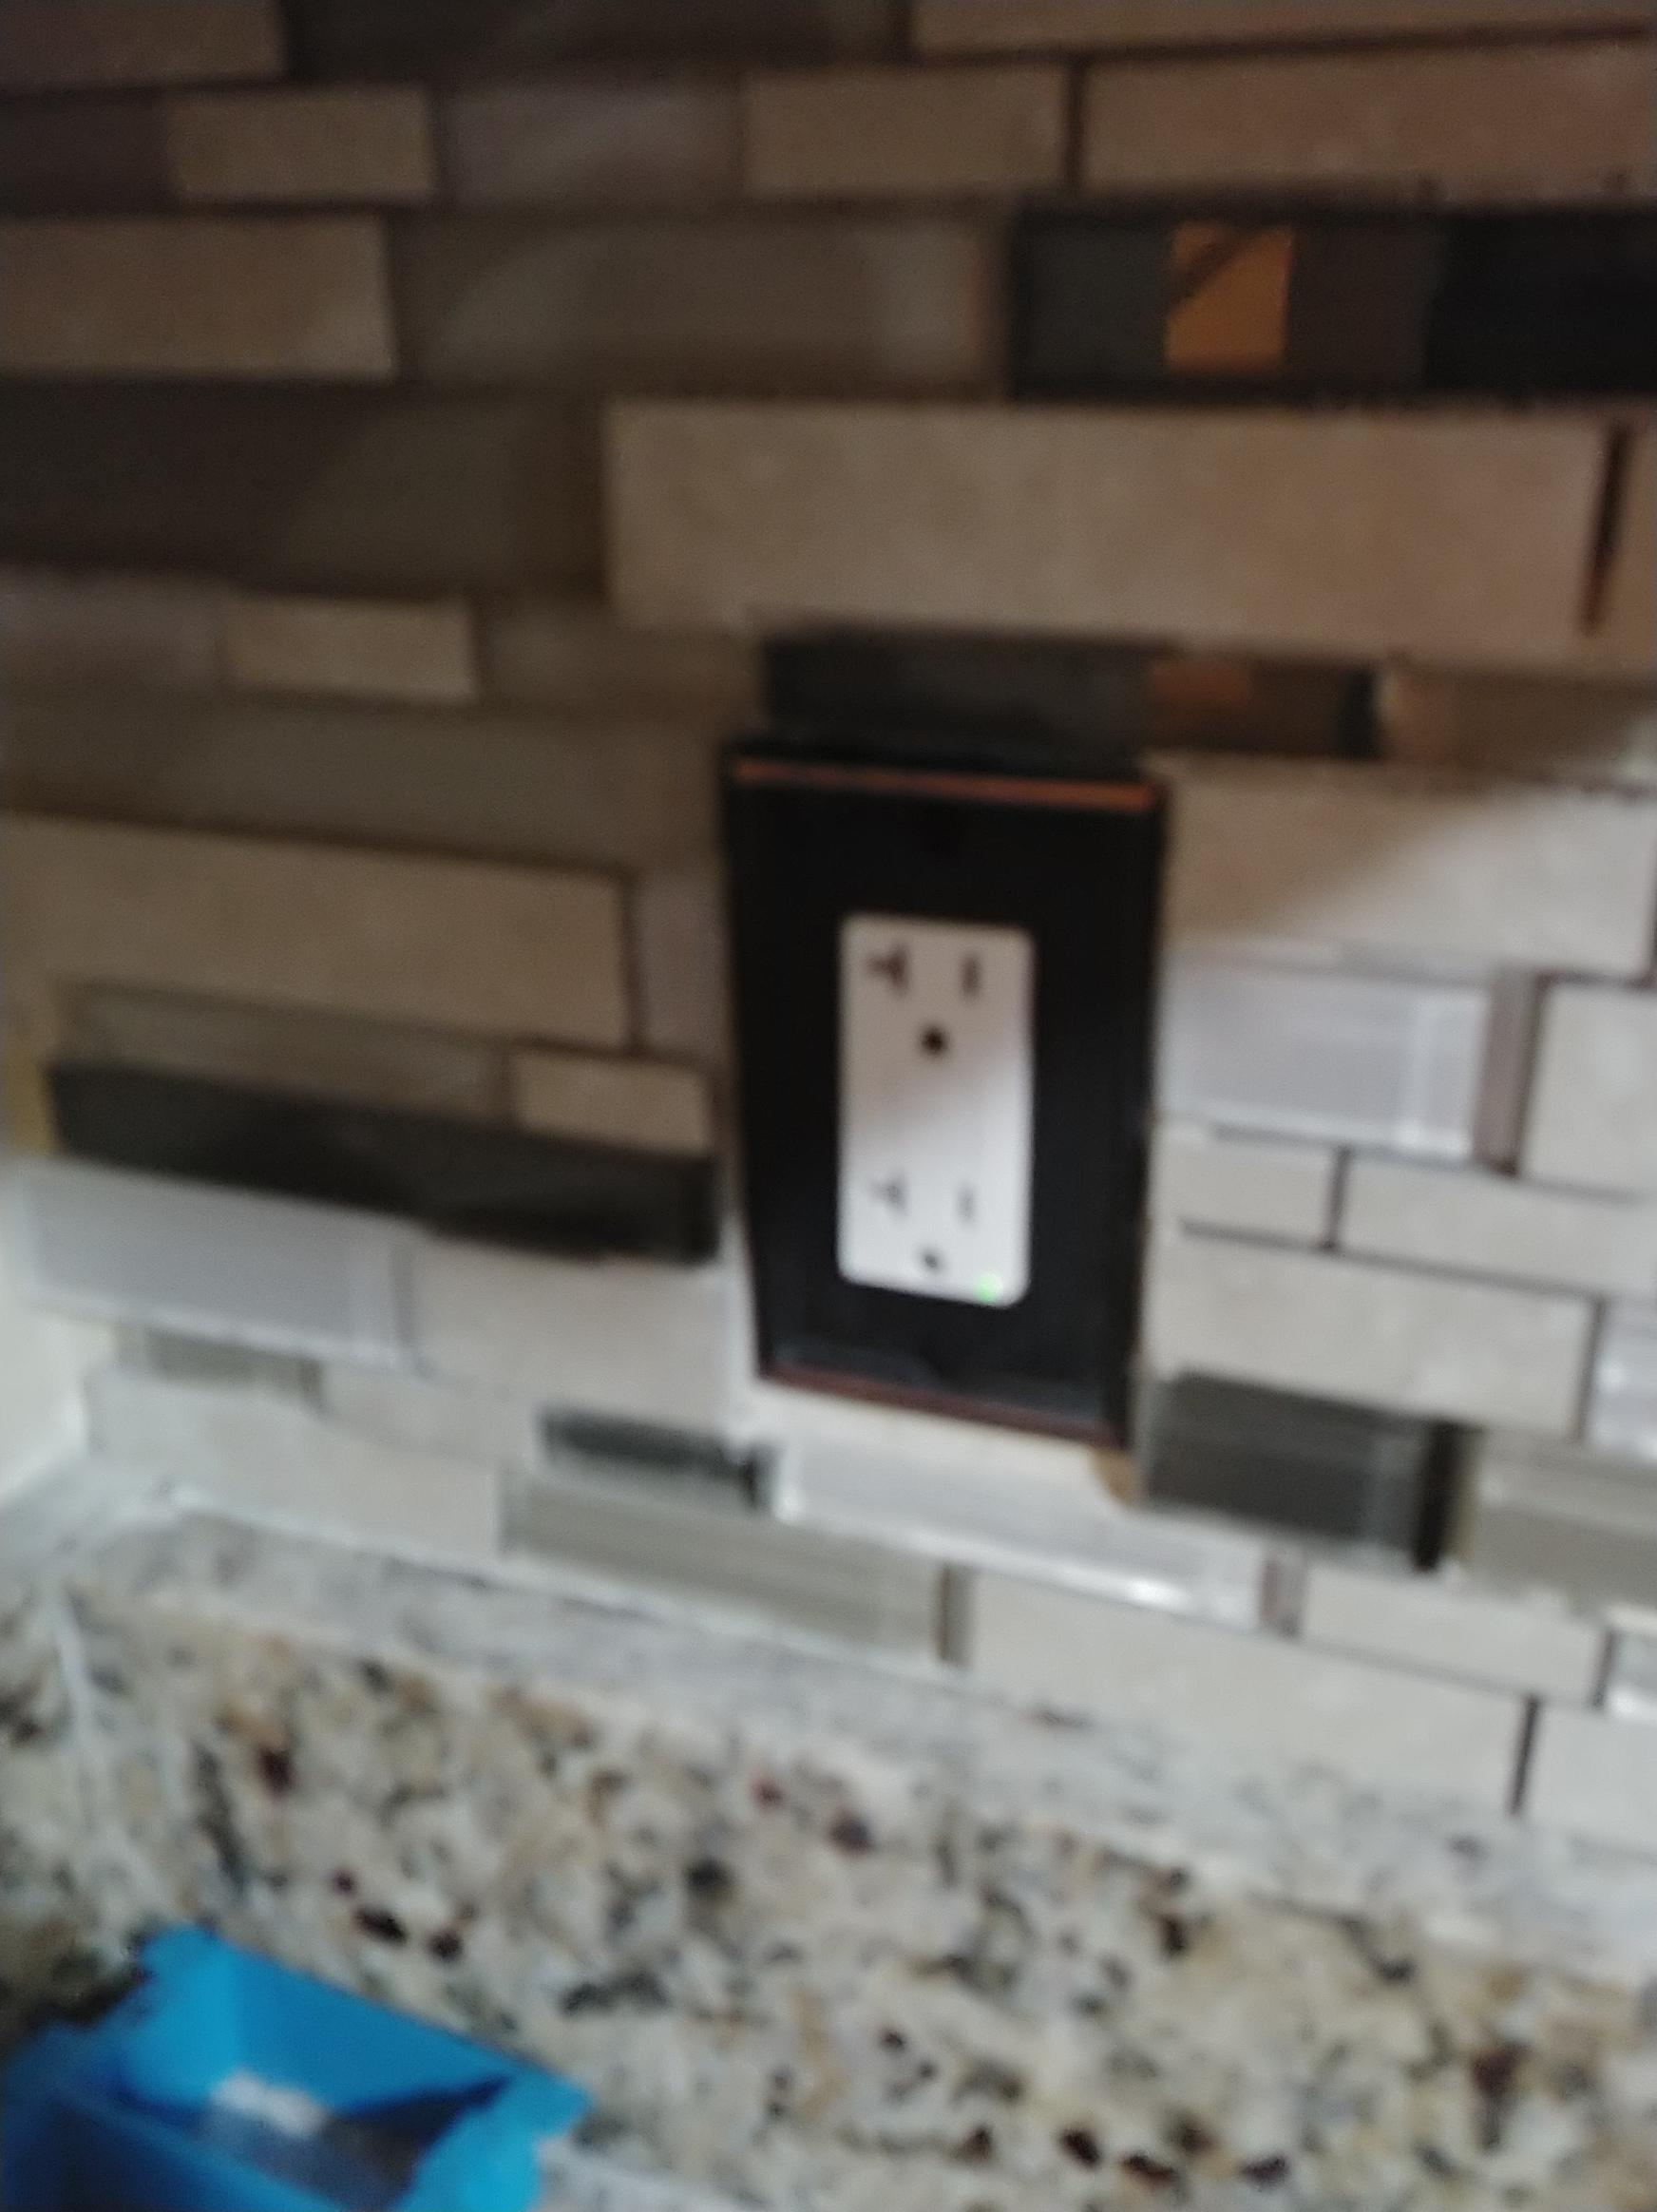 Any advice on cutting glass backsplash better?-0220191308_1550726210034.jpg